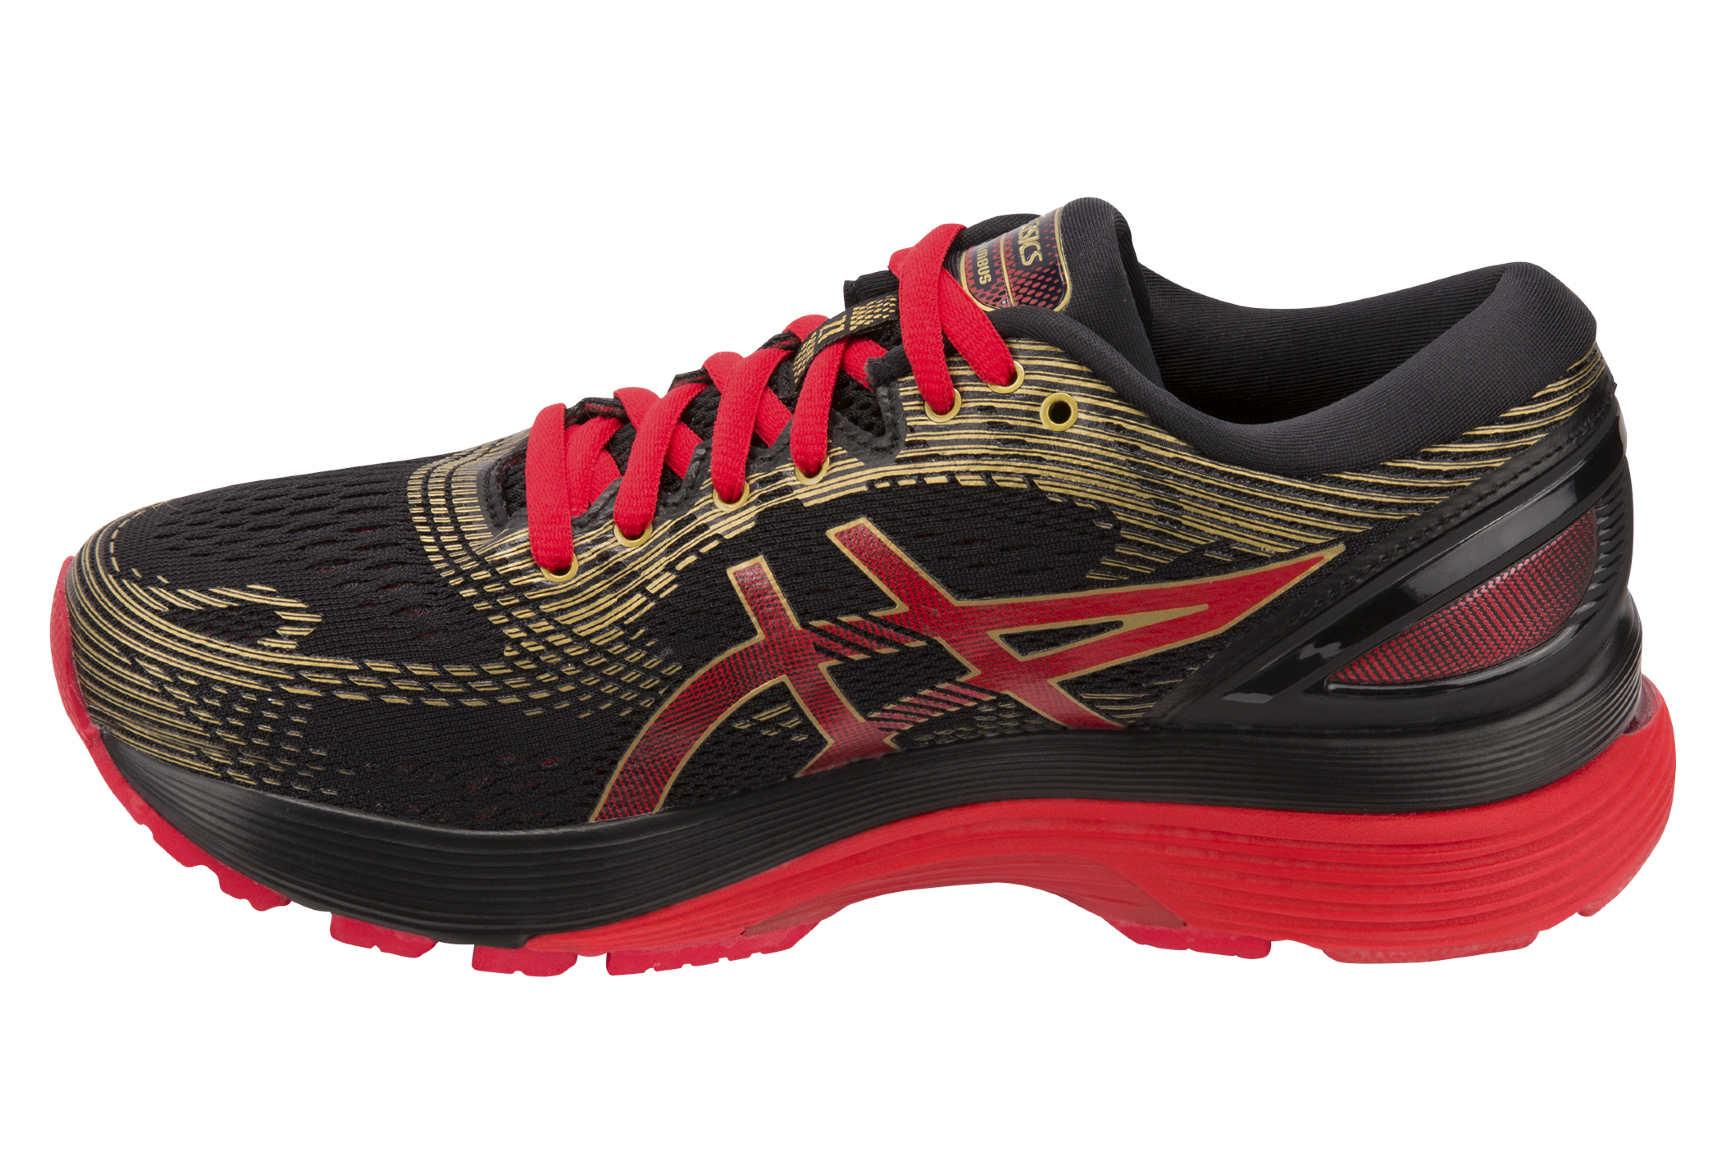 design intemporel 5e925 14a3f Chaussures femme Asics Gel Nimbus 21